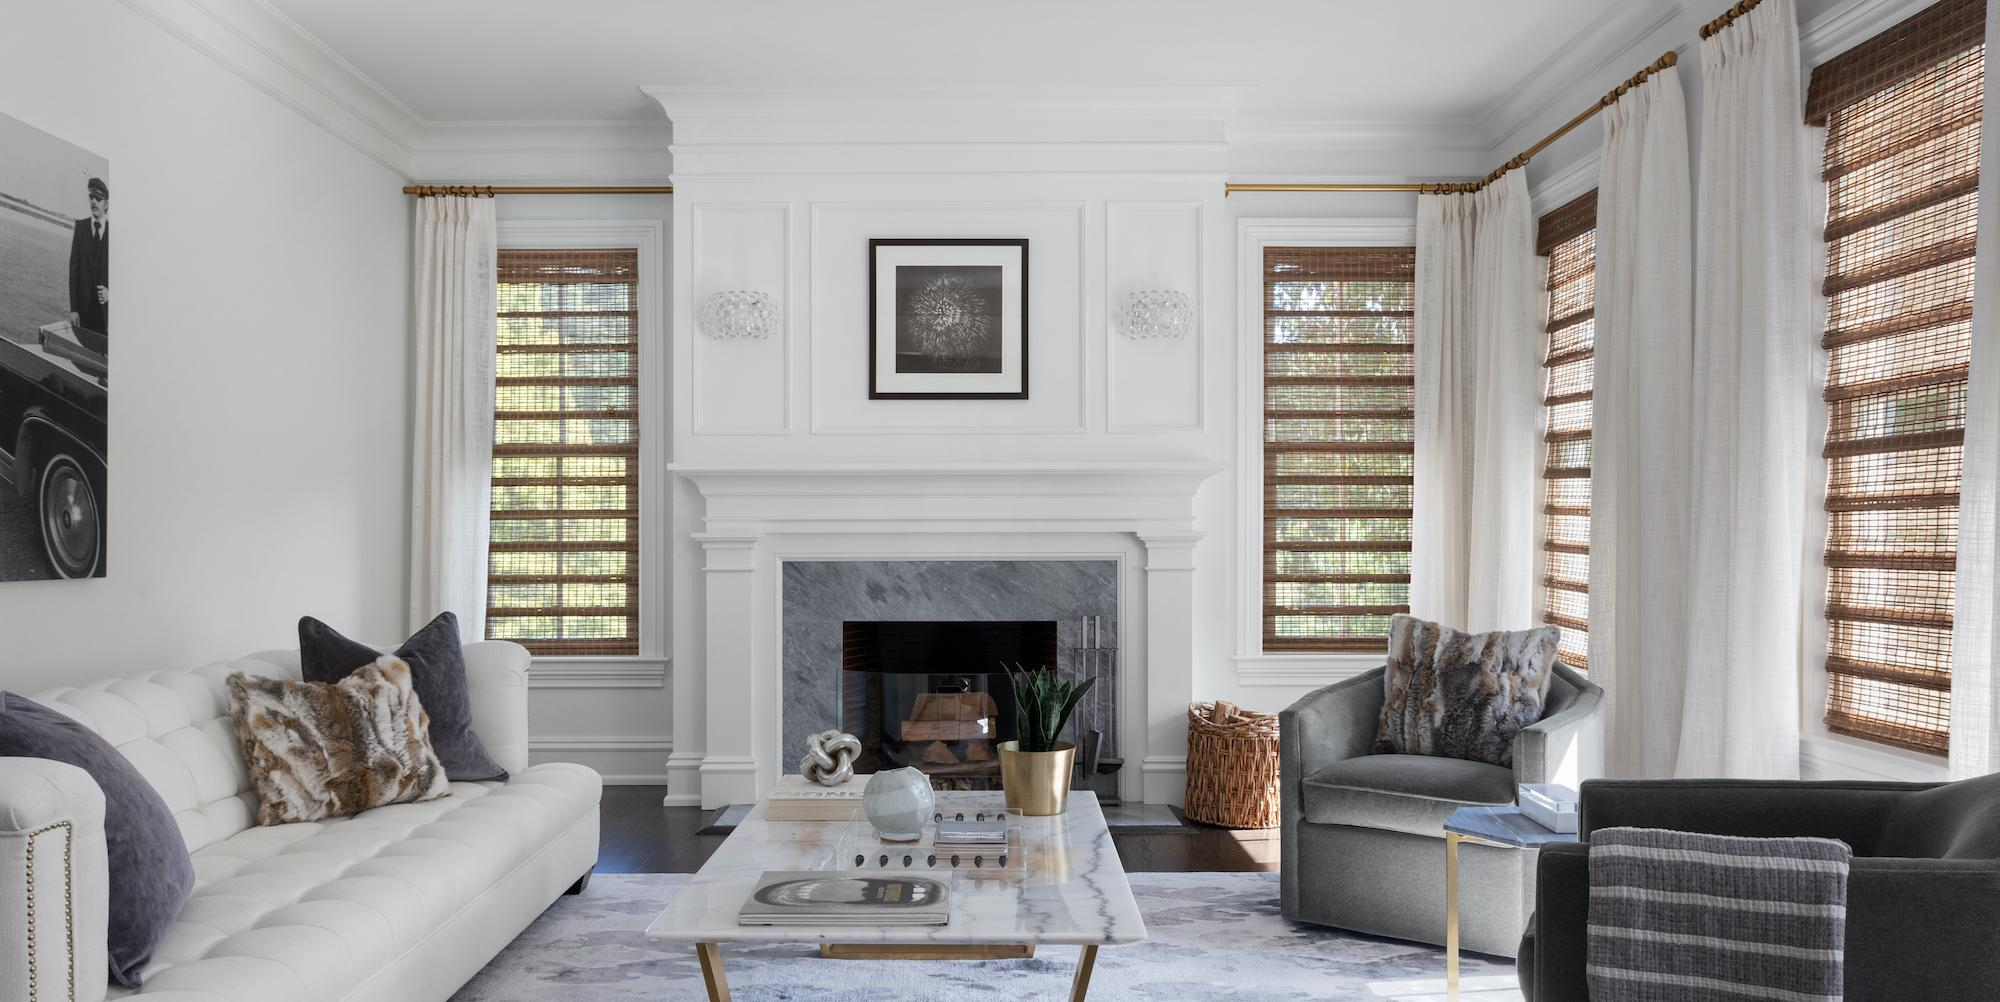 A contemporary living room features white linen drapery and unlined woven wood shades in a beautiful natural wood tone